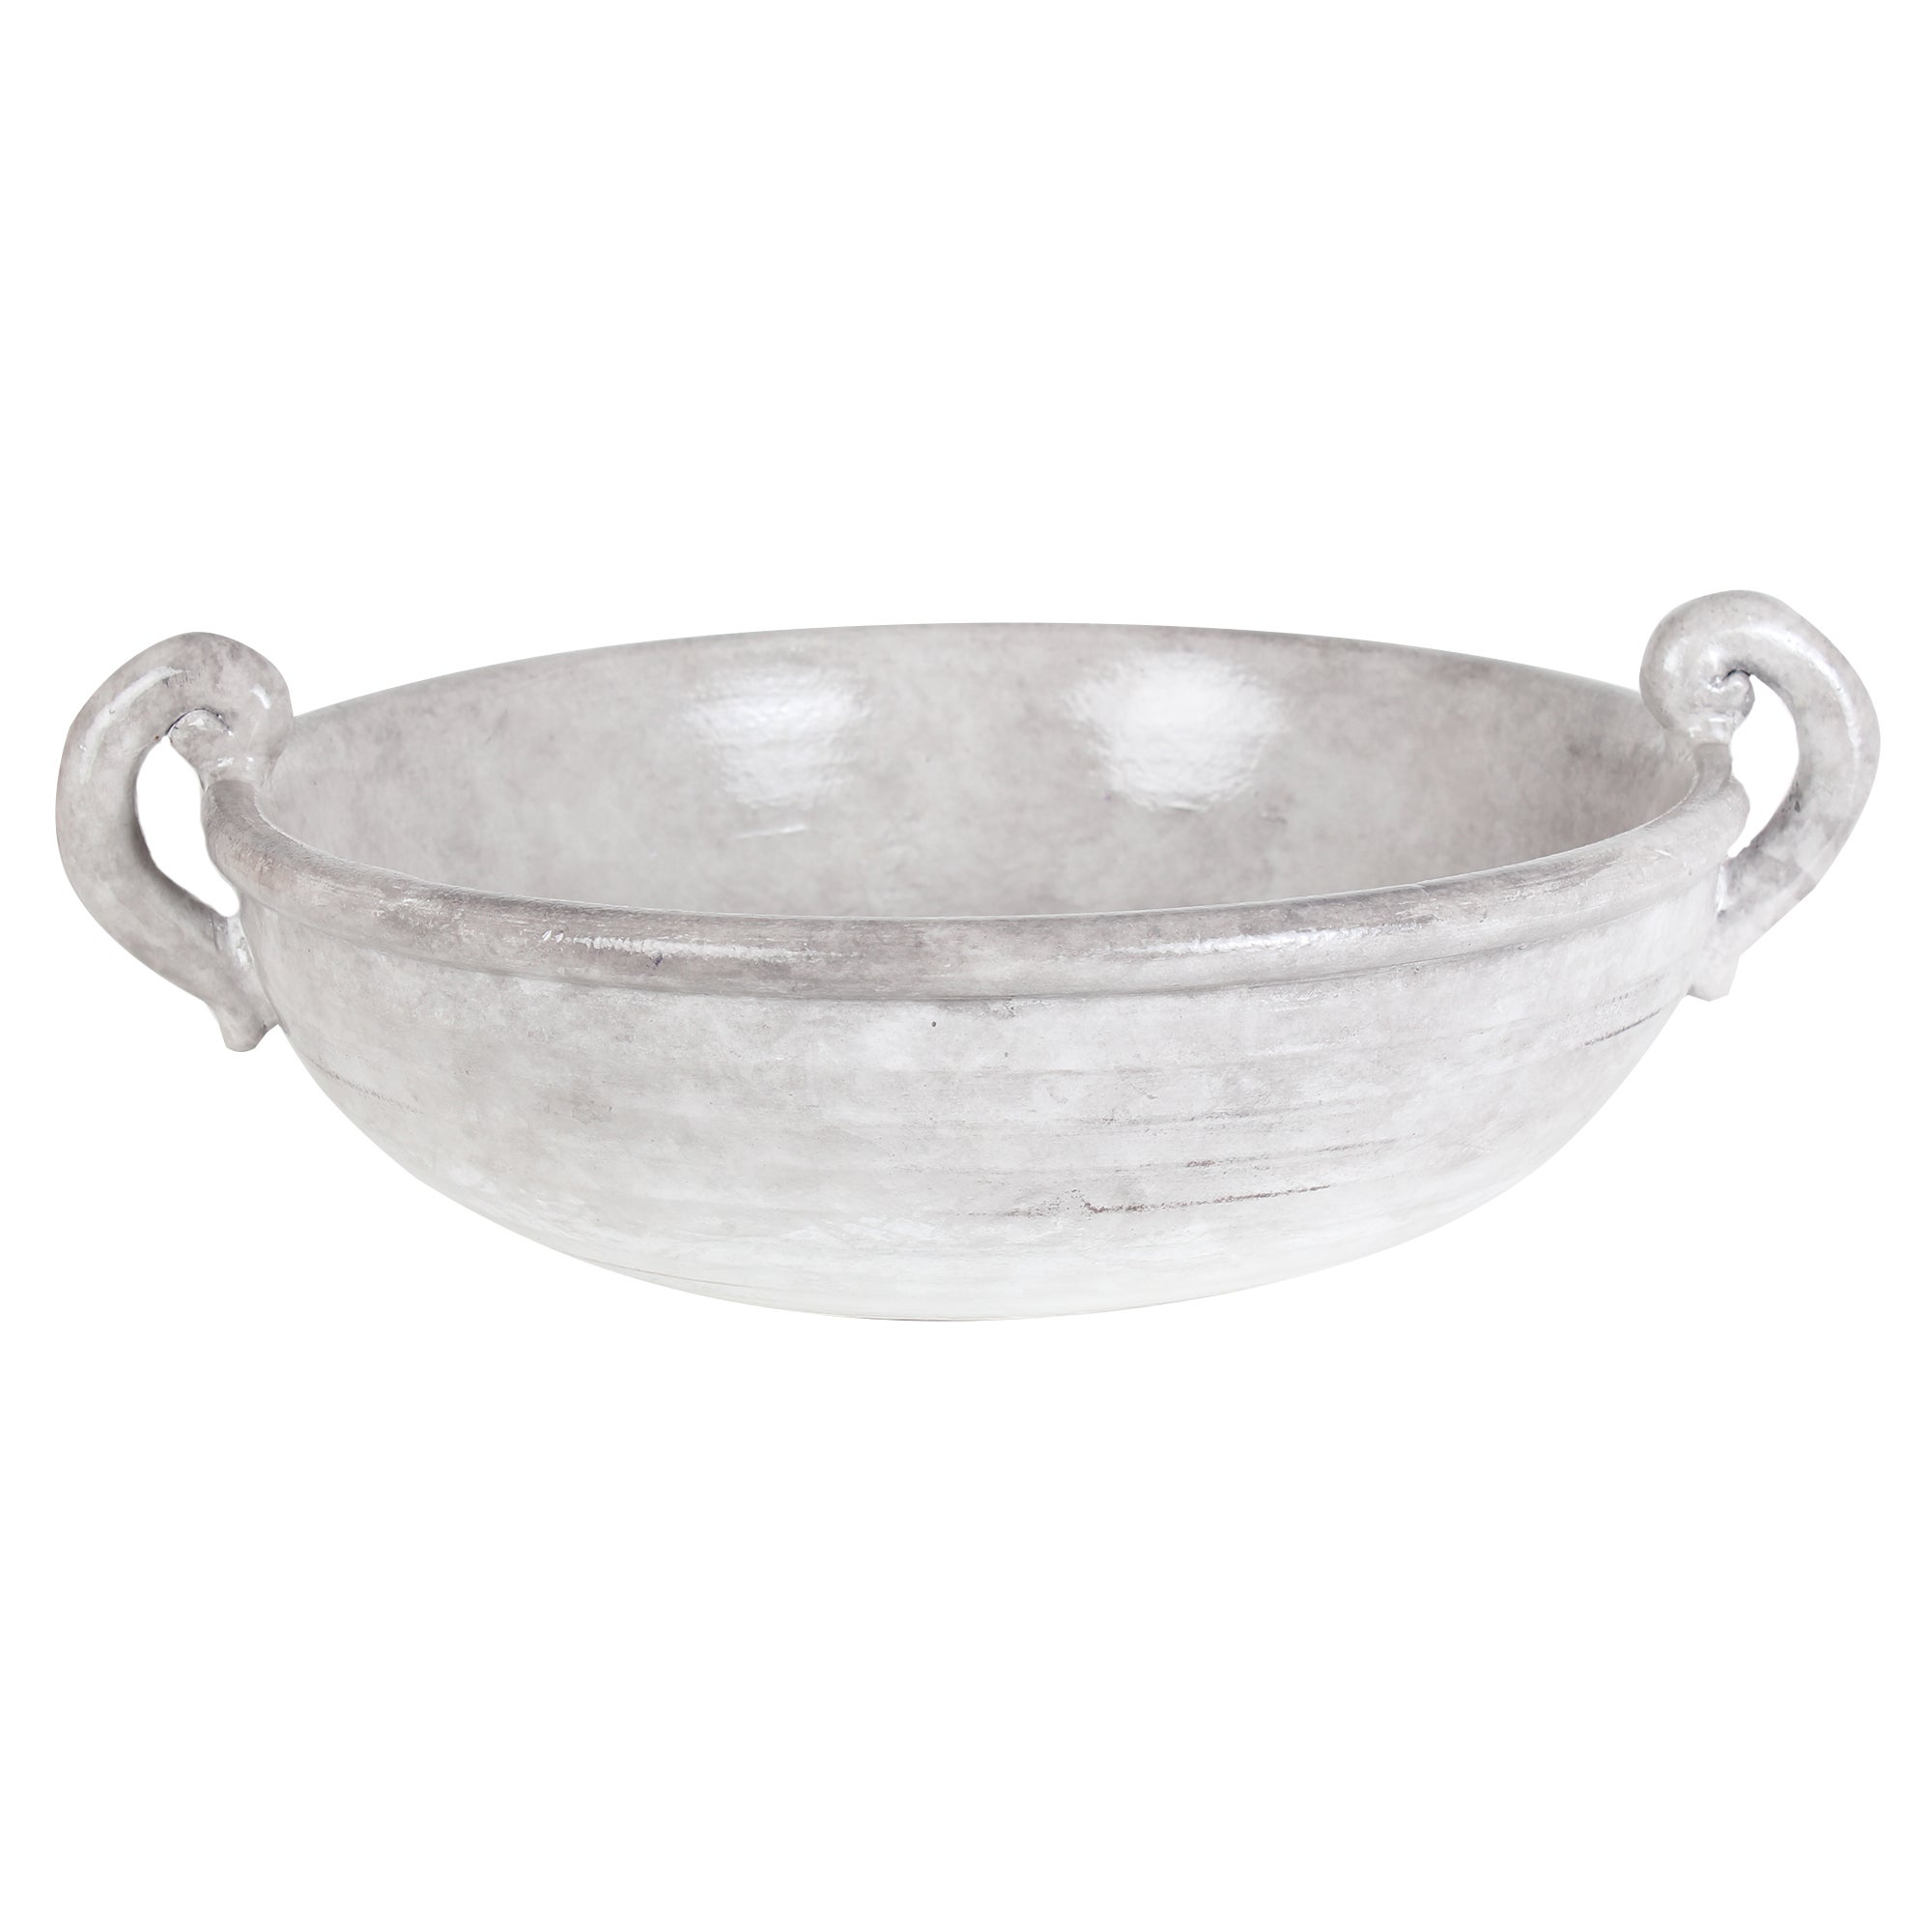 Photo of Maison francaise hand thrown bowl grey